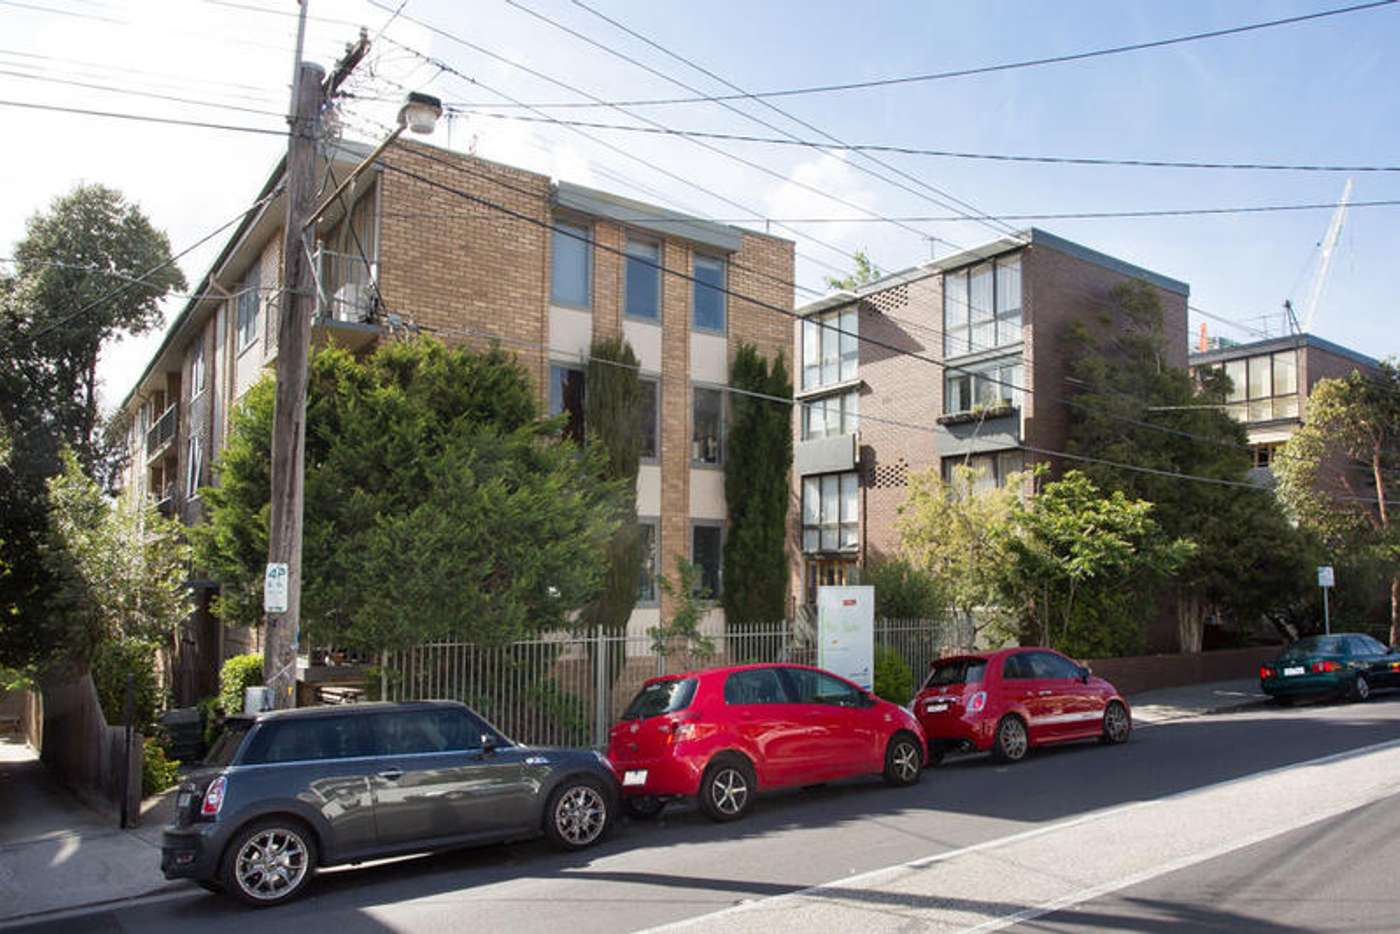 Main view of Homely apartment listing, 7/48 Darling Street, South Yarra VIC 3141